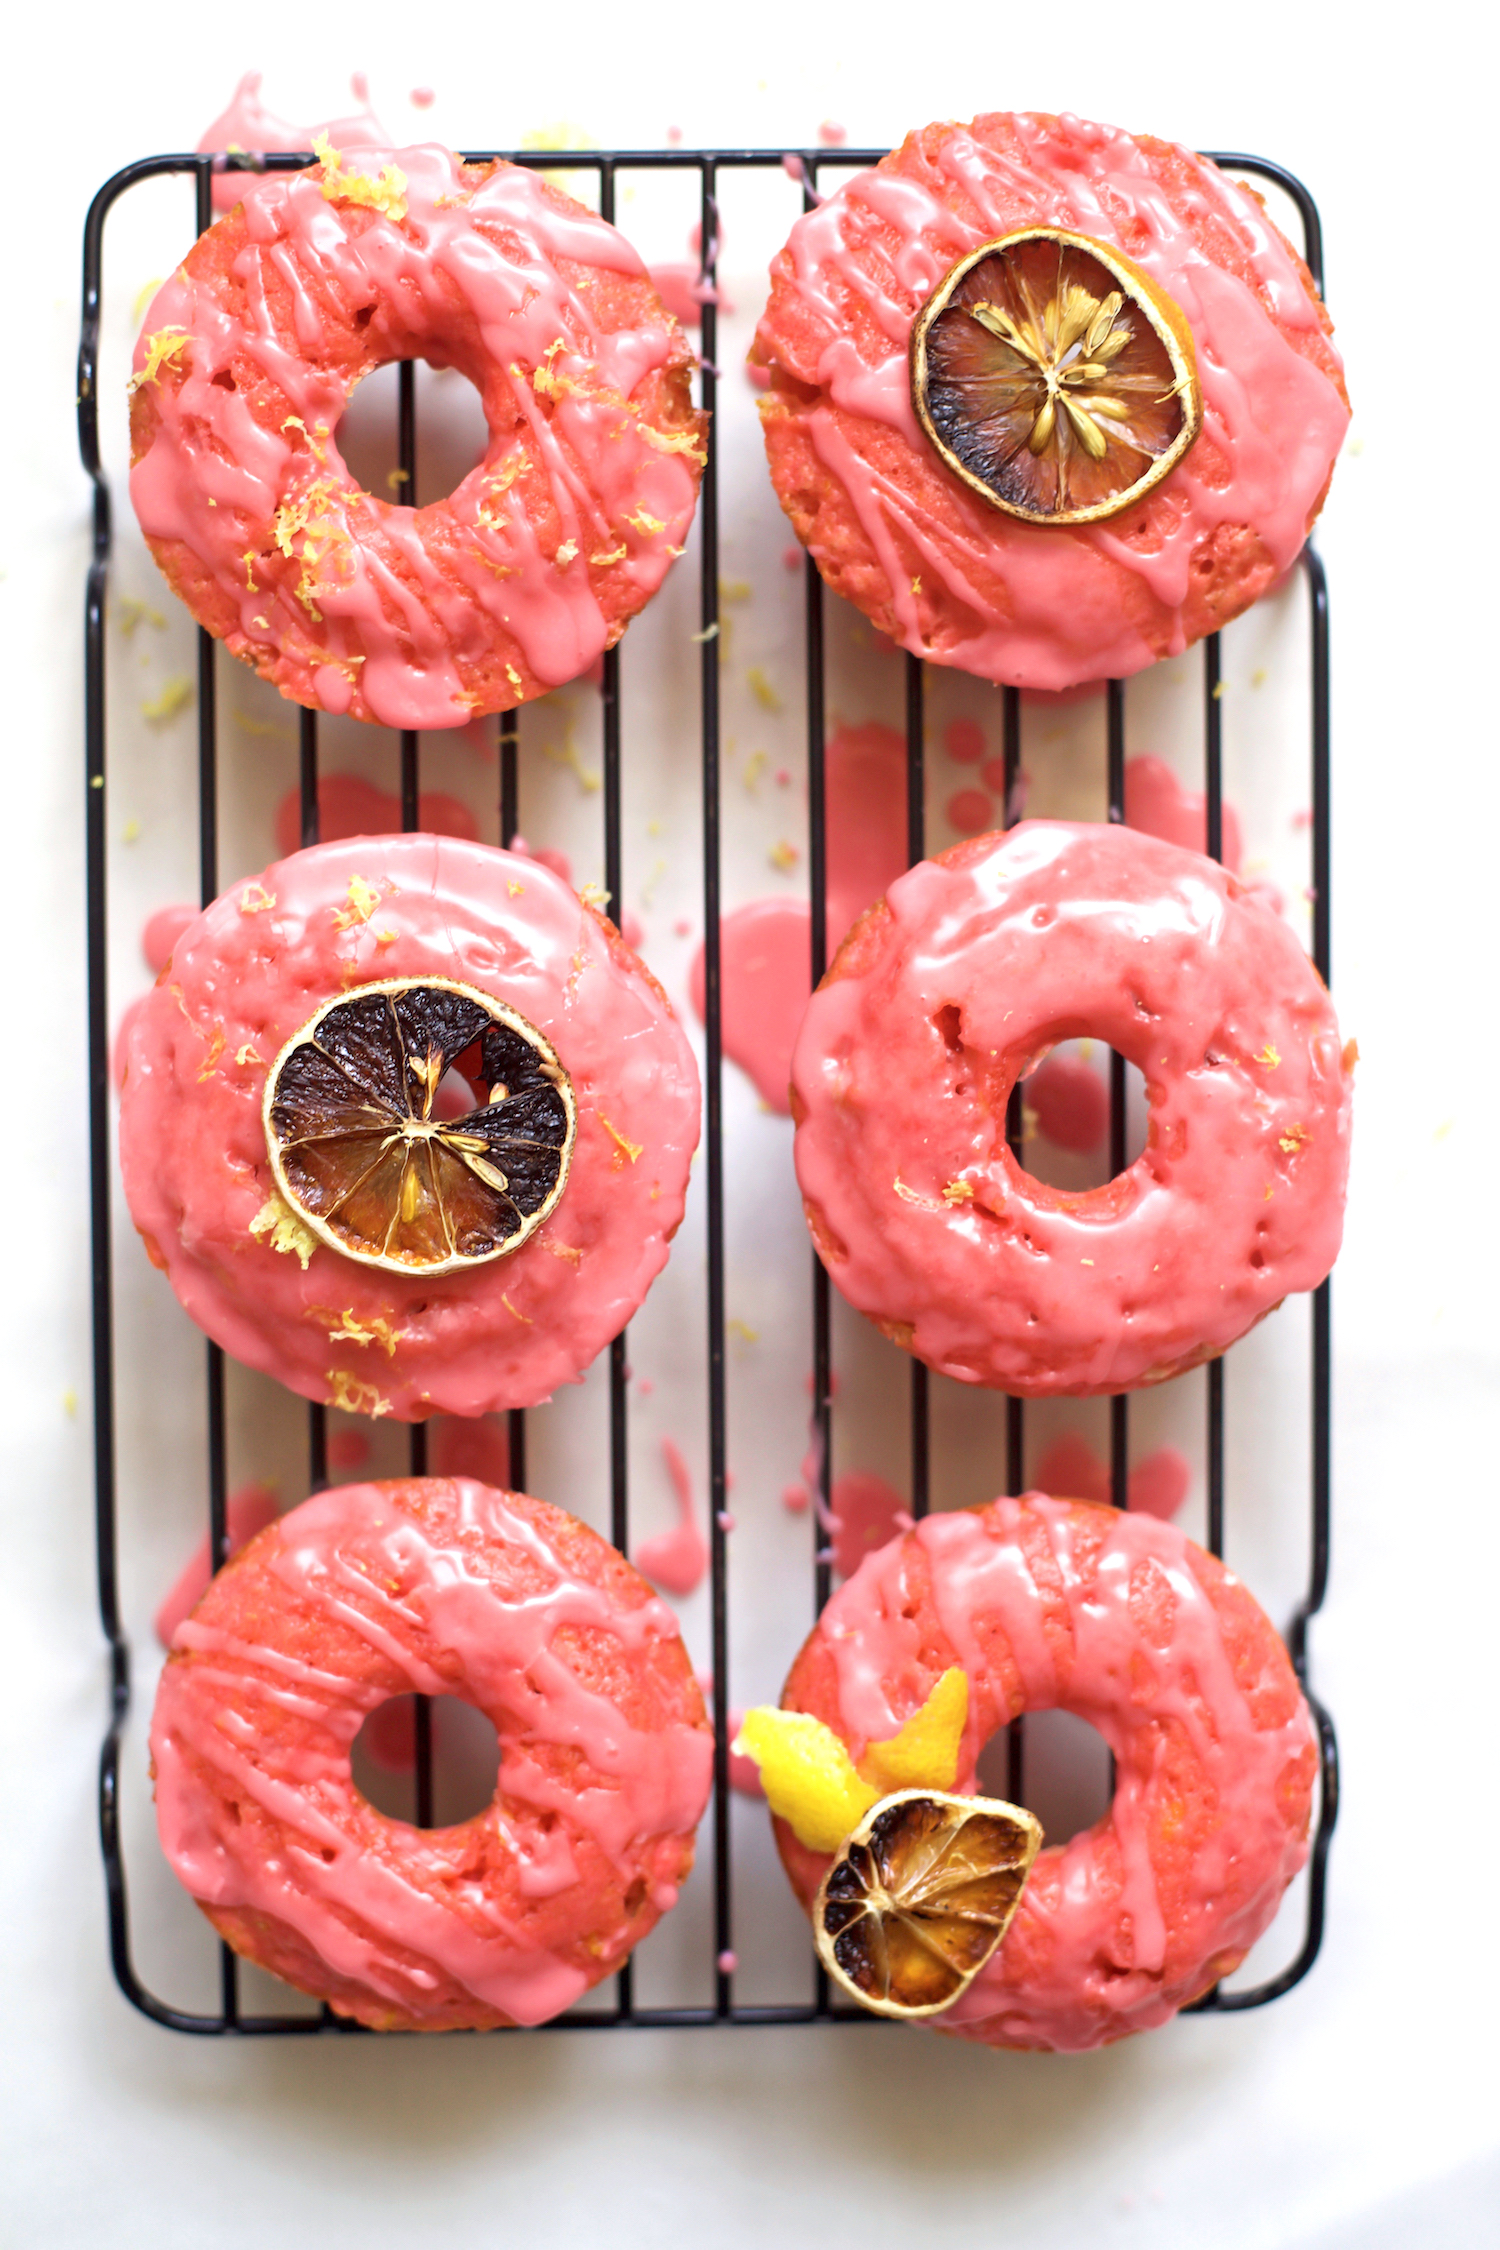 pink-lemonade-donut-recipe.jpg